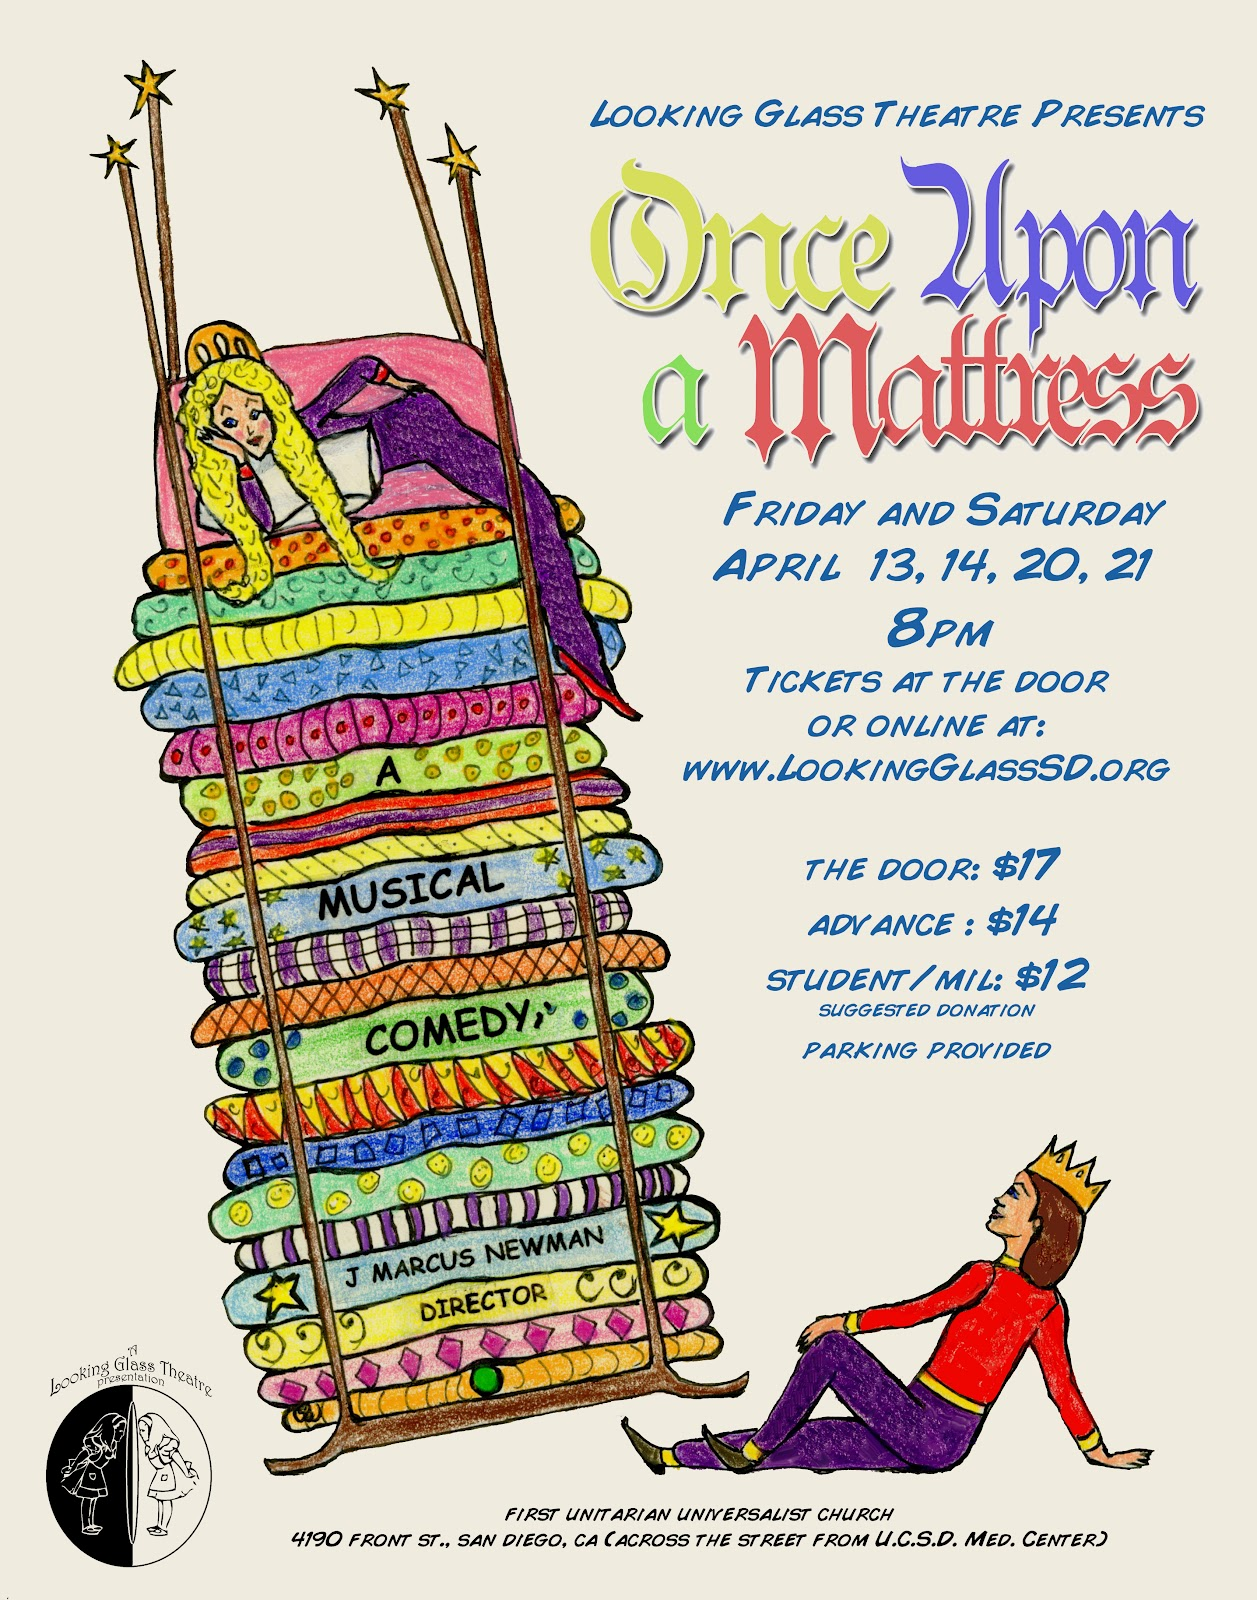 Starting this Friday, I will be appearing in Looking Glass Theatre's  production of Once Upon a Mattress!